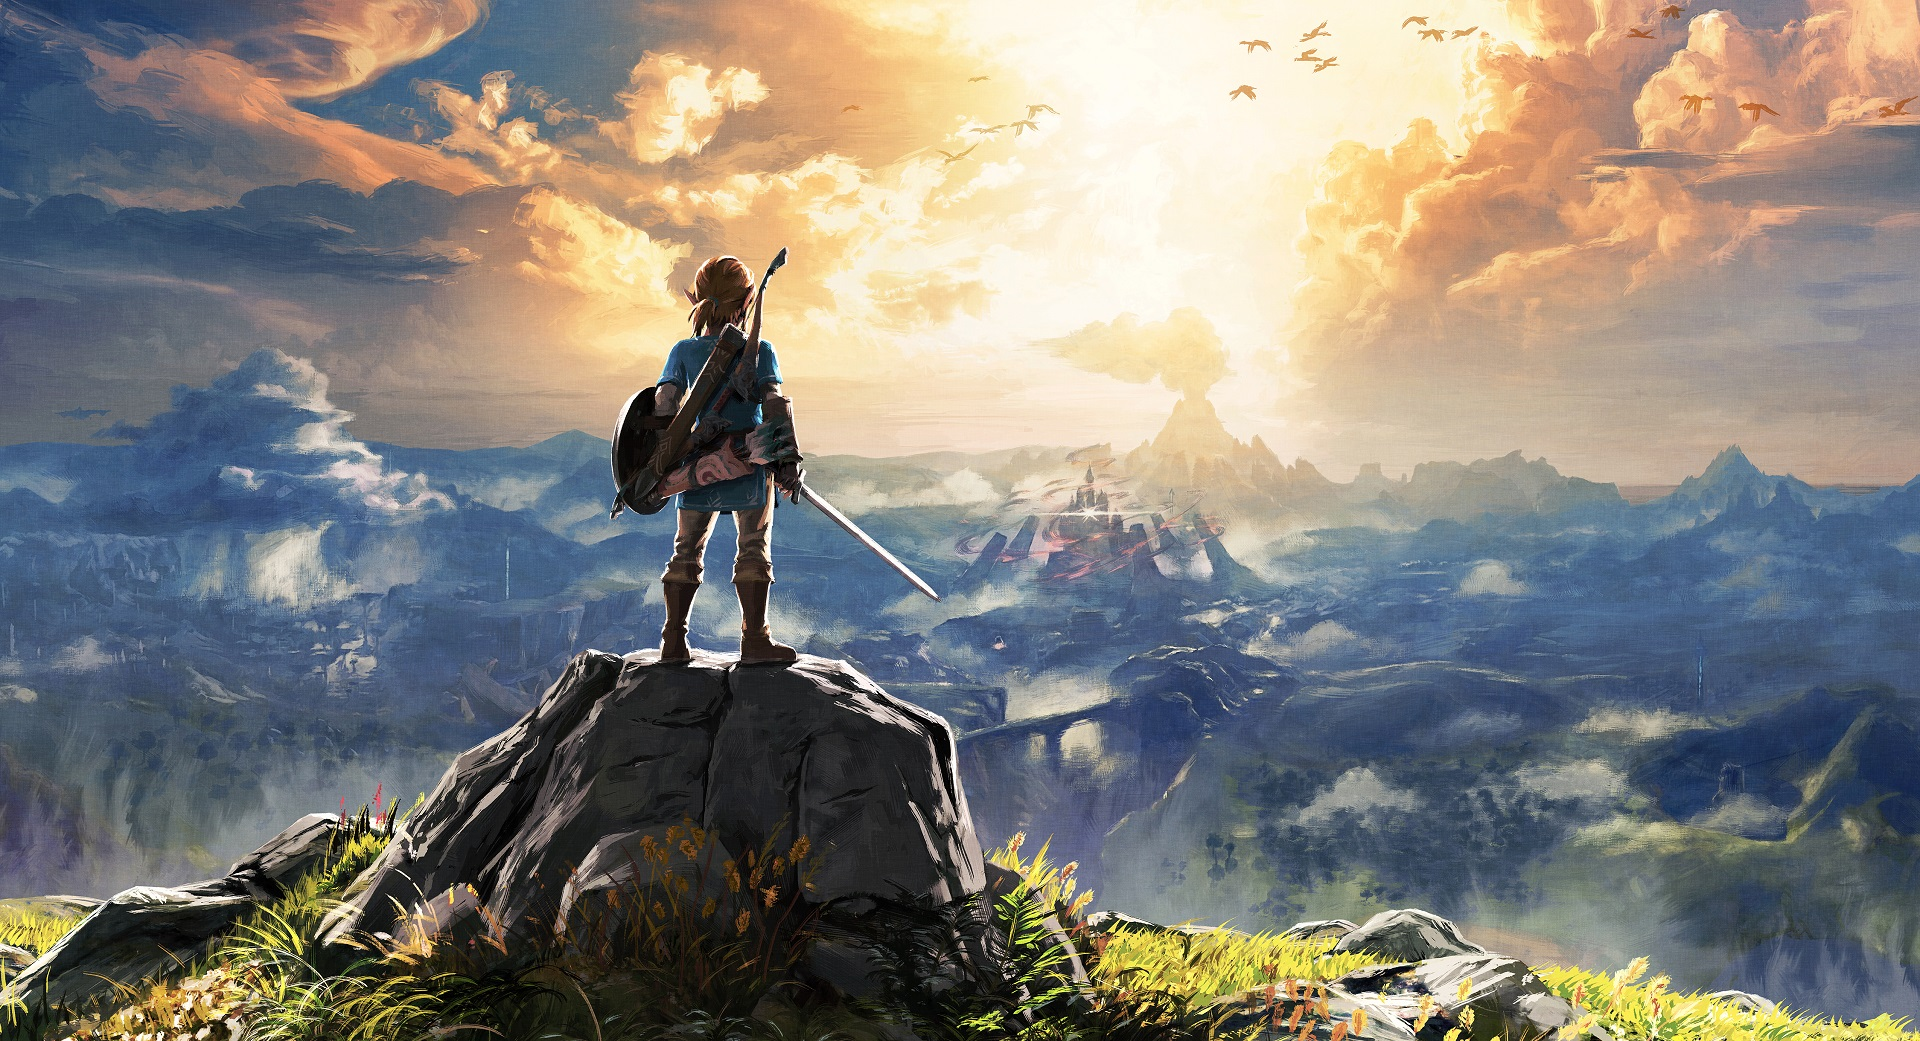 how to download legend of zelda breath of the wild on pc